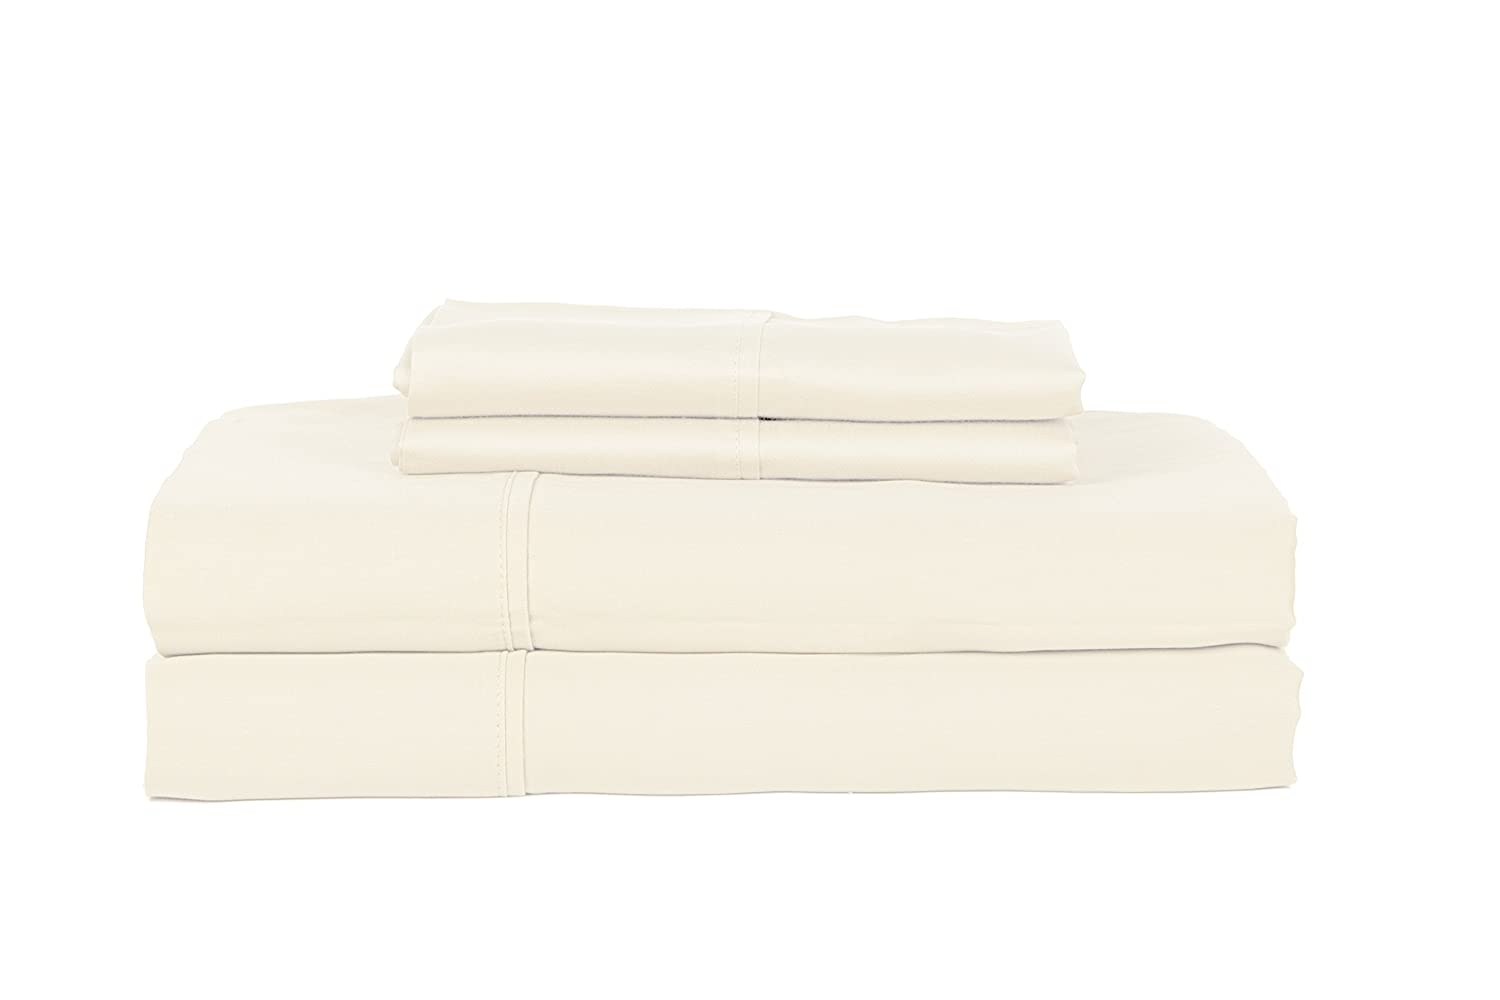 RDM Koncept Elegance Collection T360 Sheet Set Solid Combed Cotton Sateen Queen Lavender